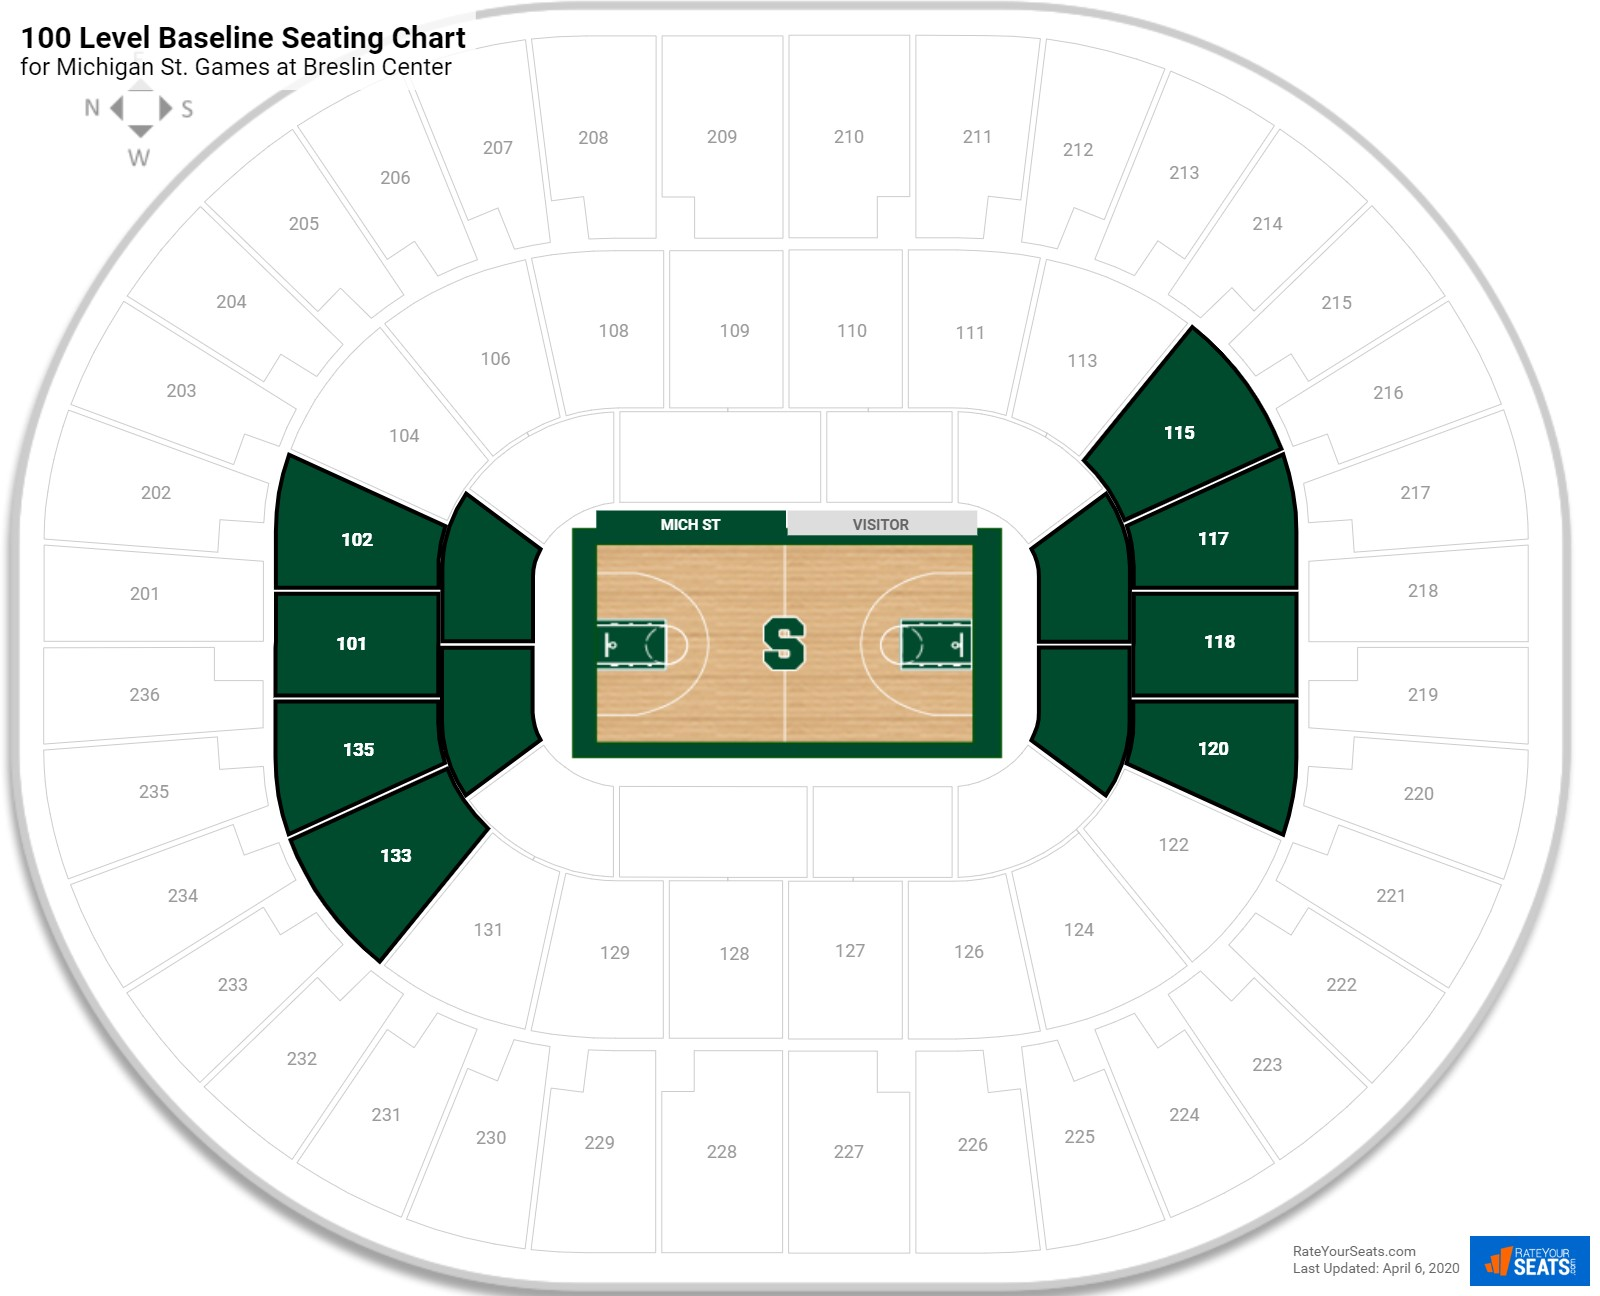 Breslin Center 100 Level Baseline Seating Chart